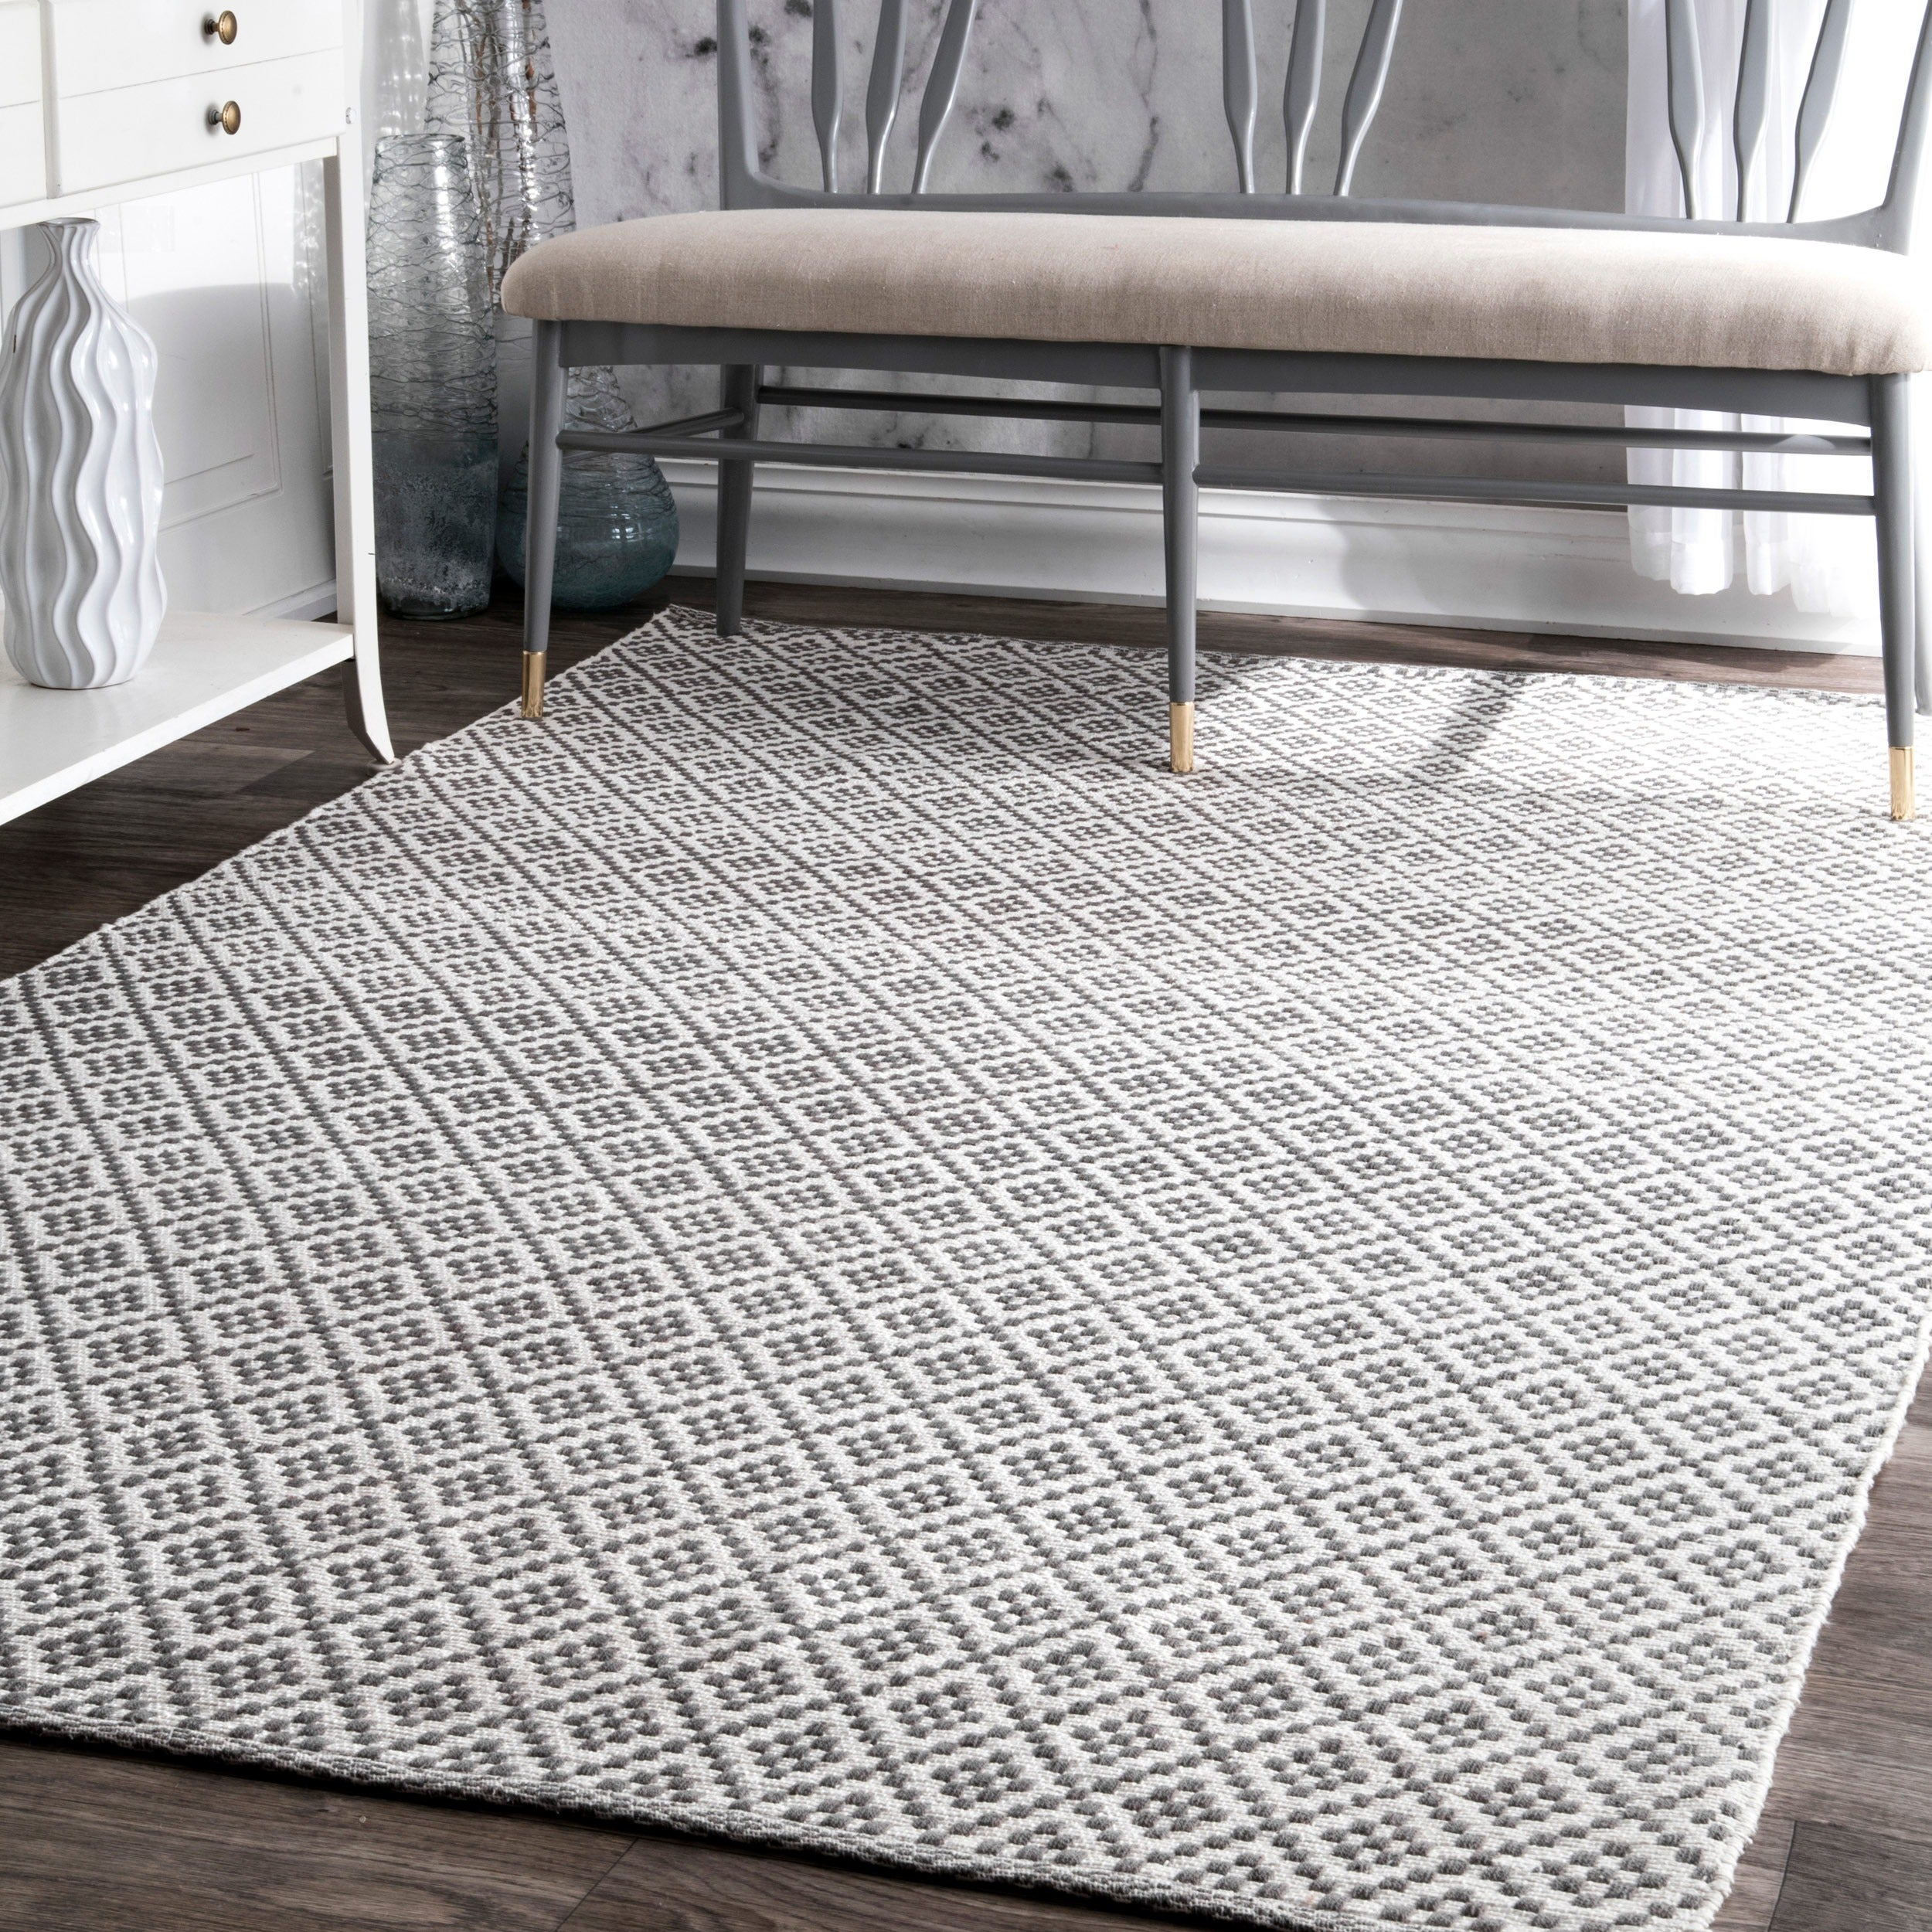 flat grey rugstore rug nardella weave with plain rugs silver basket vernargry